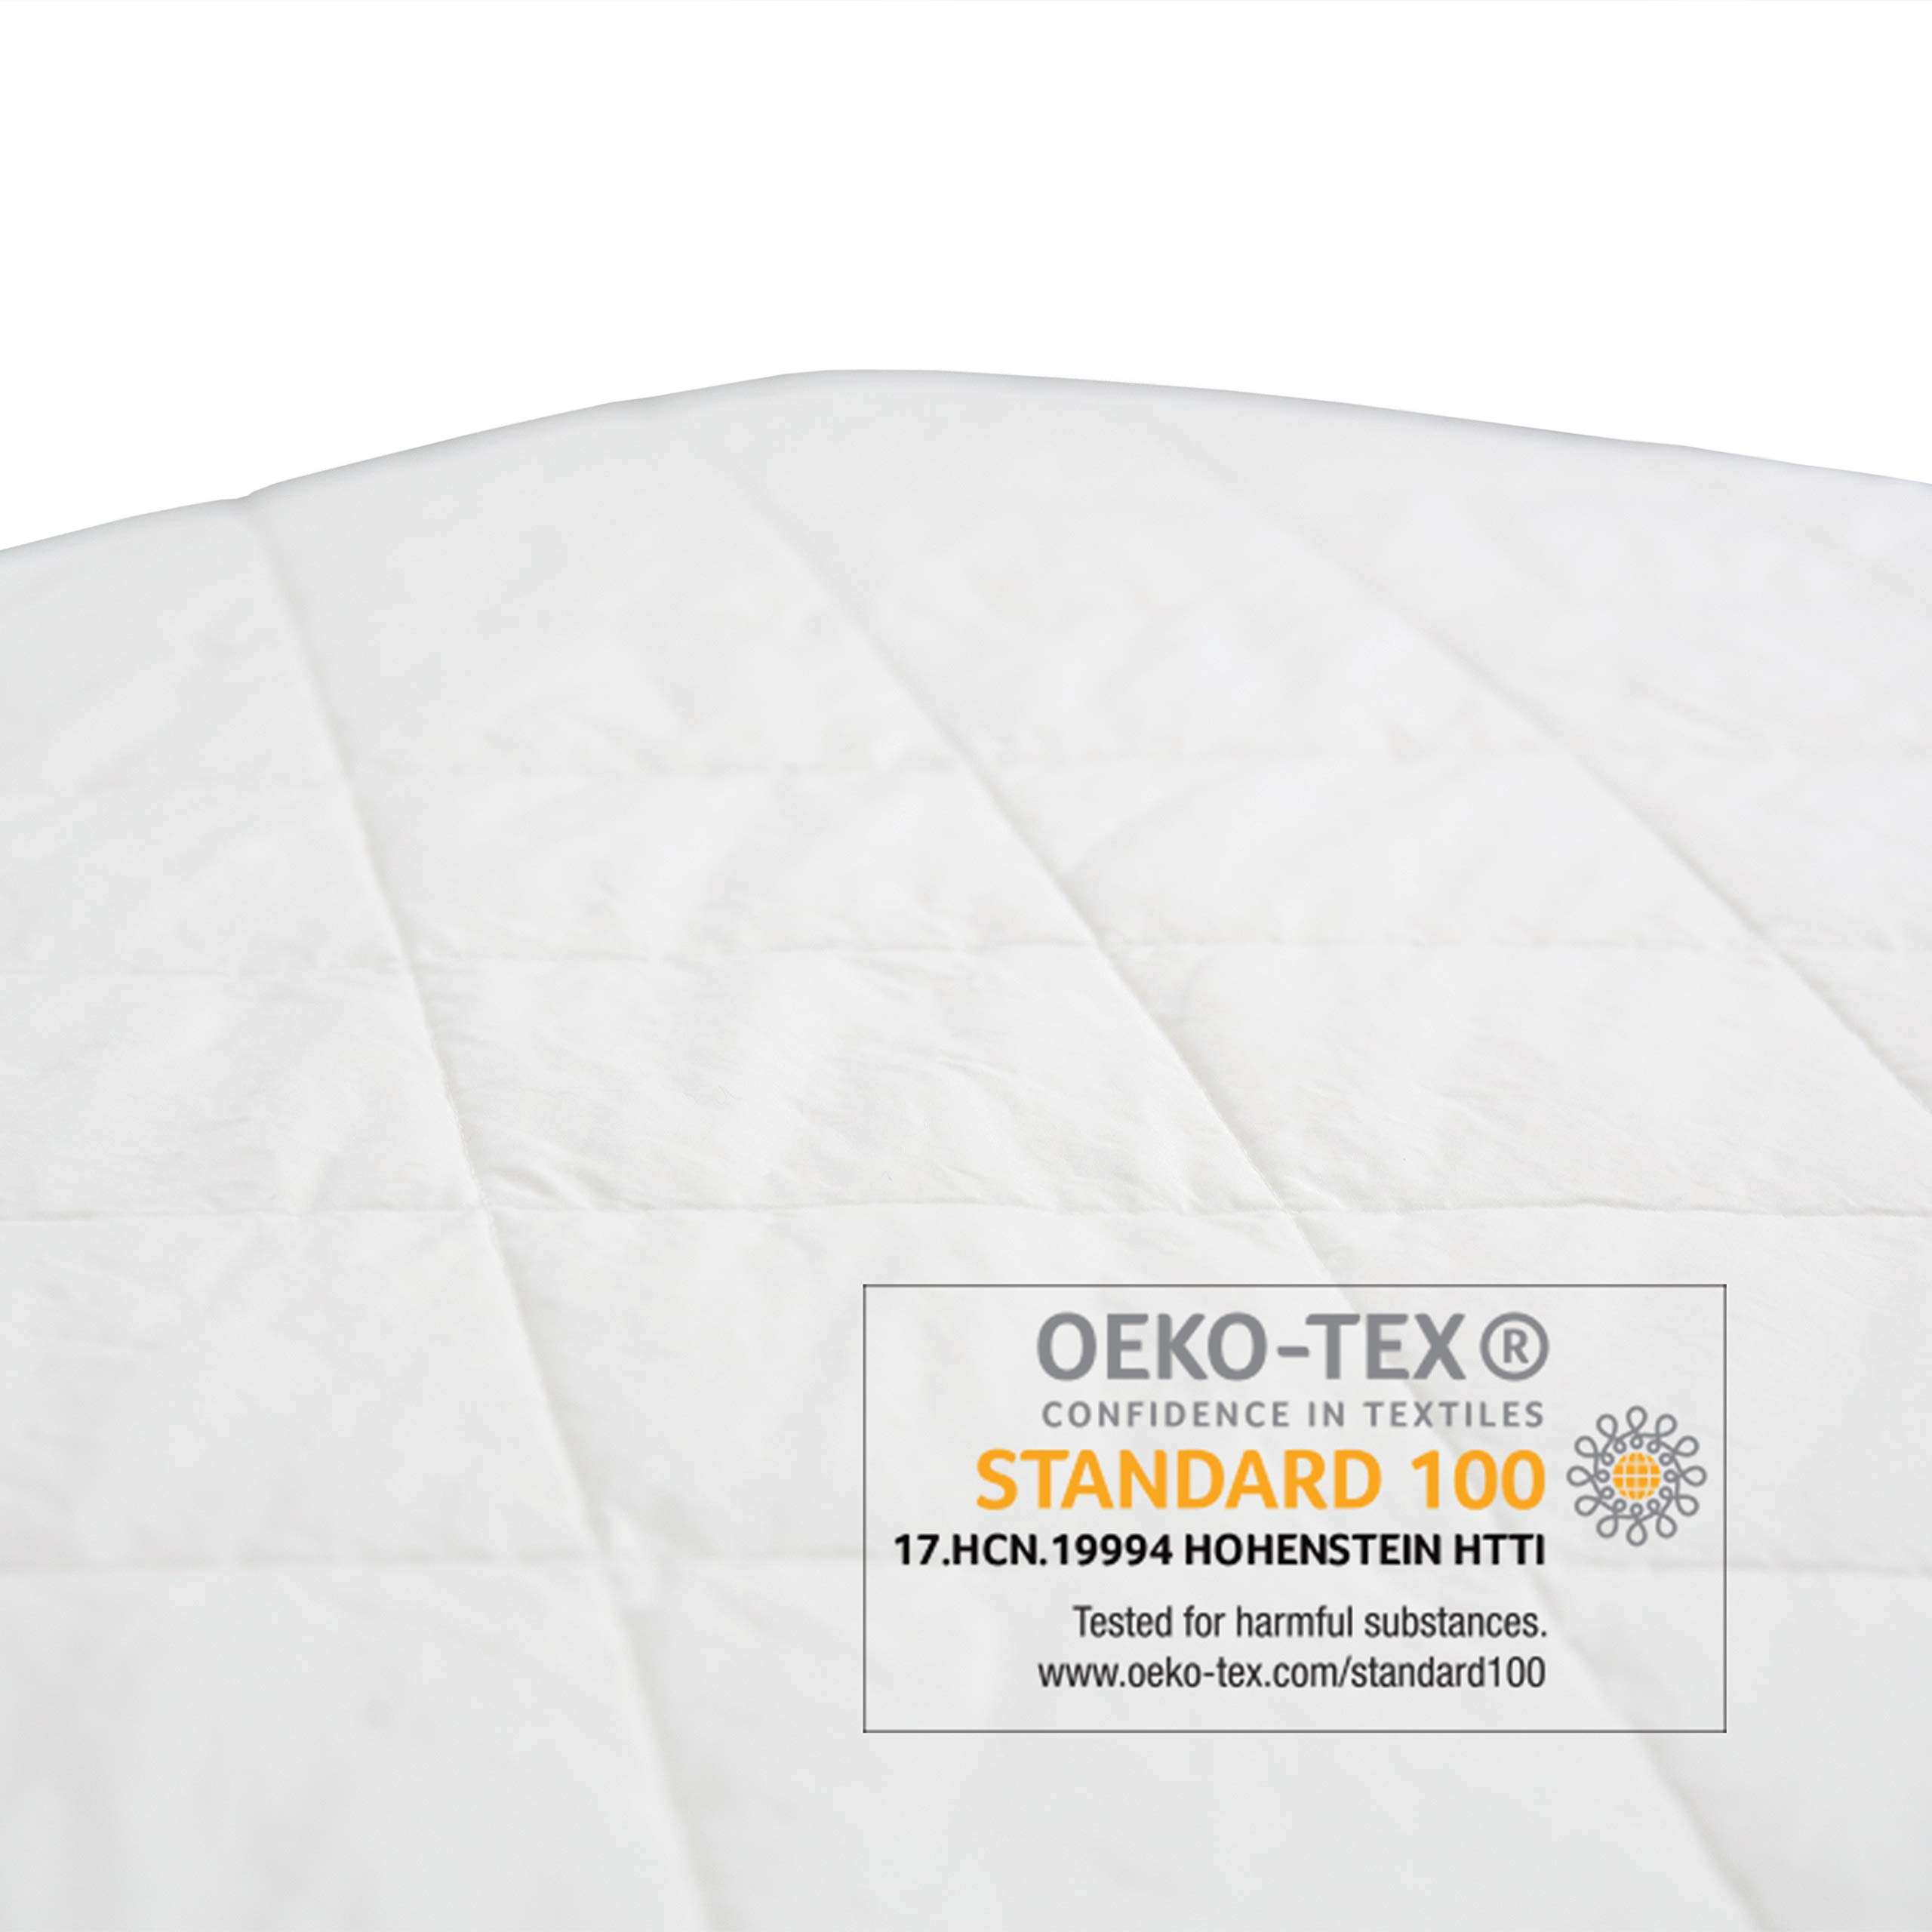 Organic, Waterproof Baby Crib Mattress Protector Pad (Not a Mattress). Polyester and Vinyl Free. Quilted, Breathable. Responsibly-Made with 100% GOTS-Certified Organic Cotton. by Sonsi. by Sonsi (Image #7)